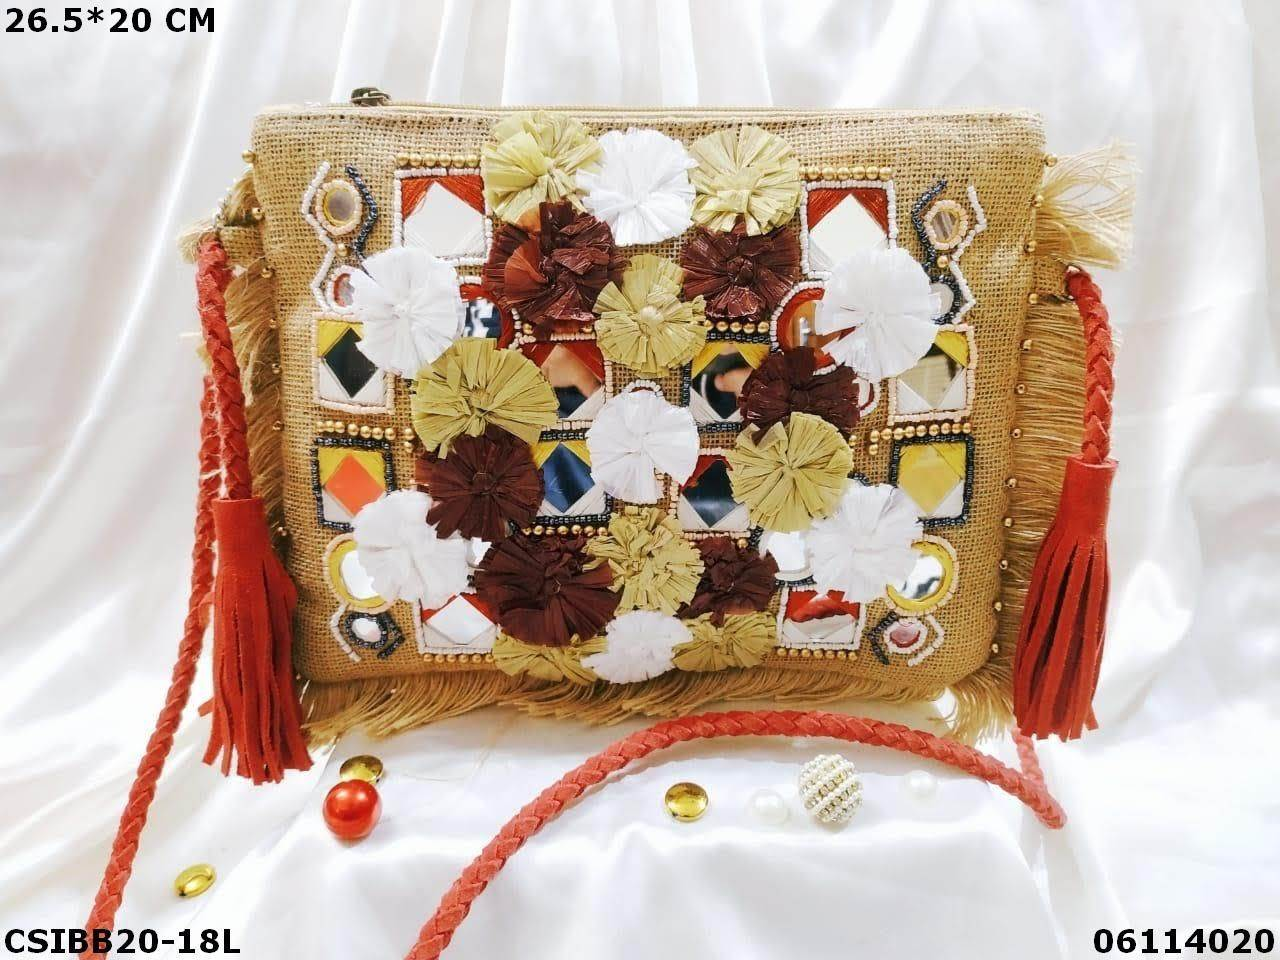 Designer Jute Banjara Bag With Leather Belt